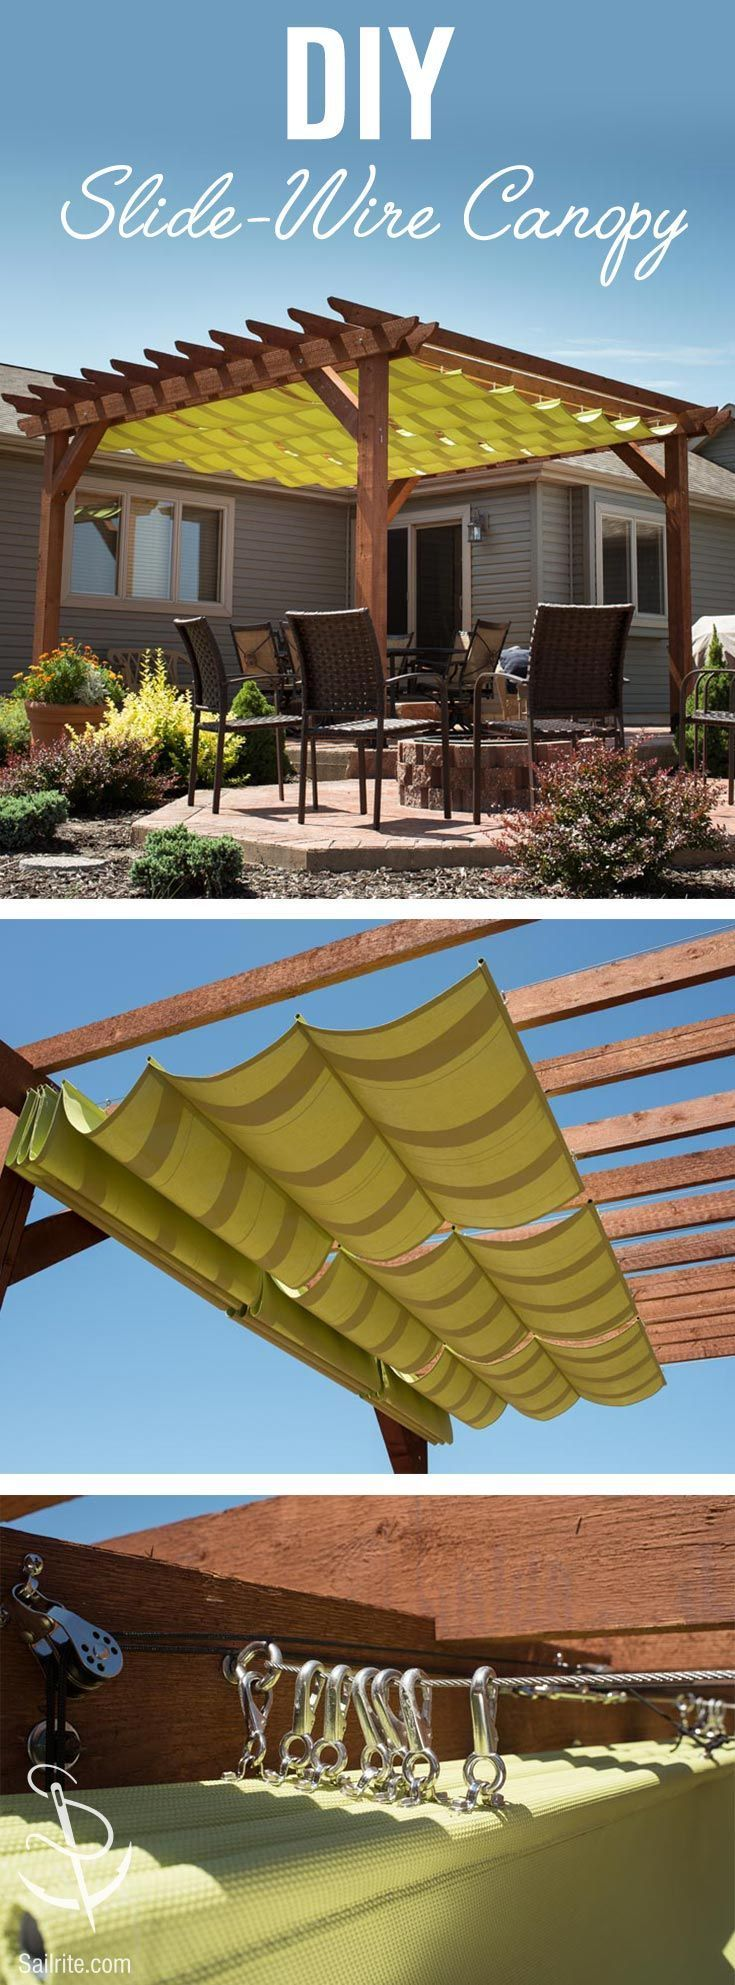 DIY Woodworking Ideas Learn how to make a slide-wire canopy with free how-to video instructions from S...